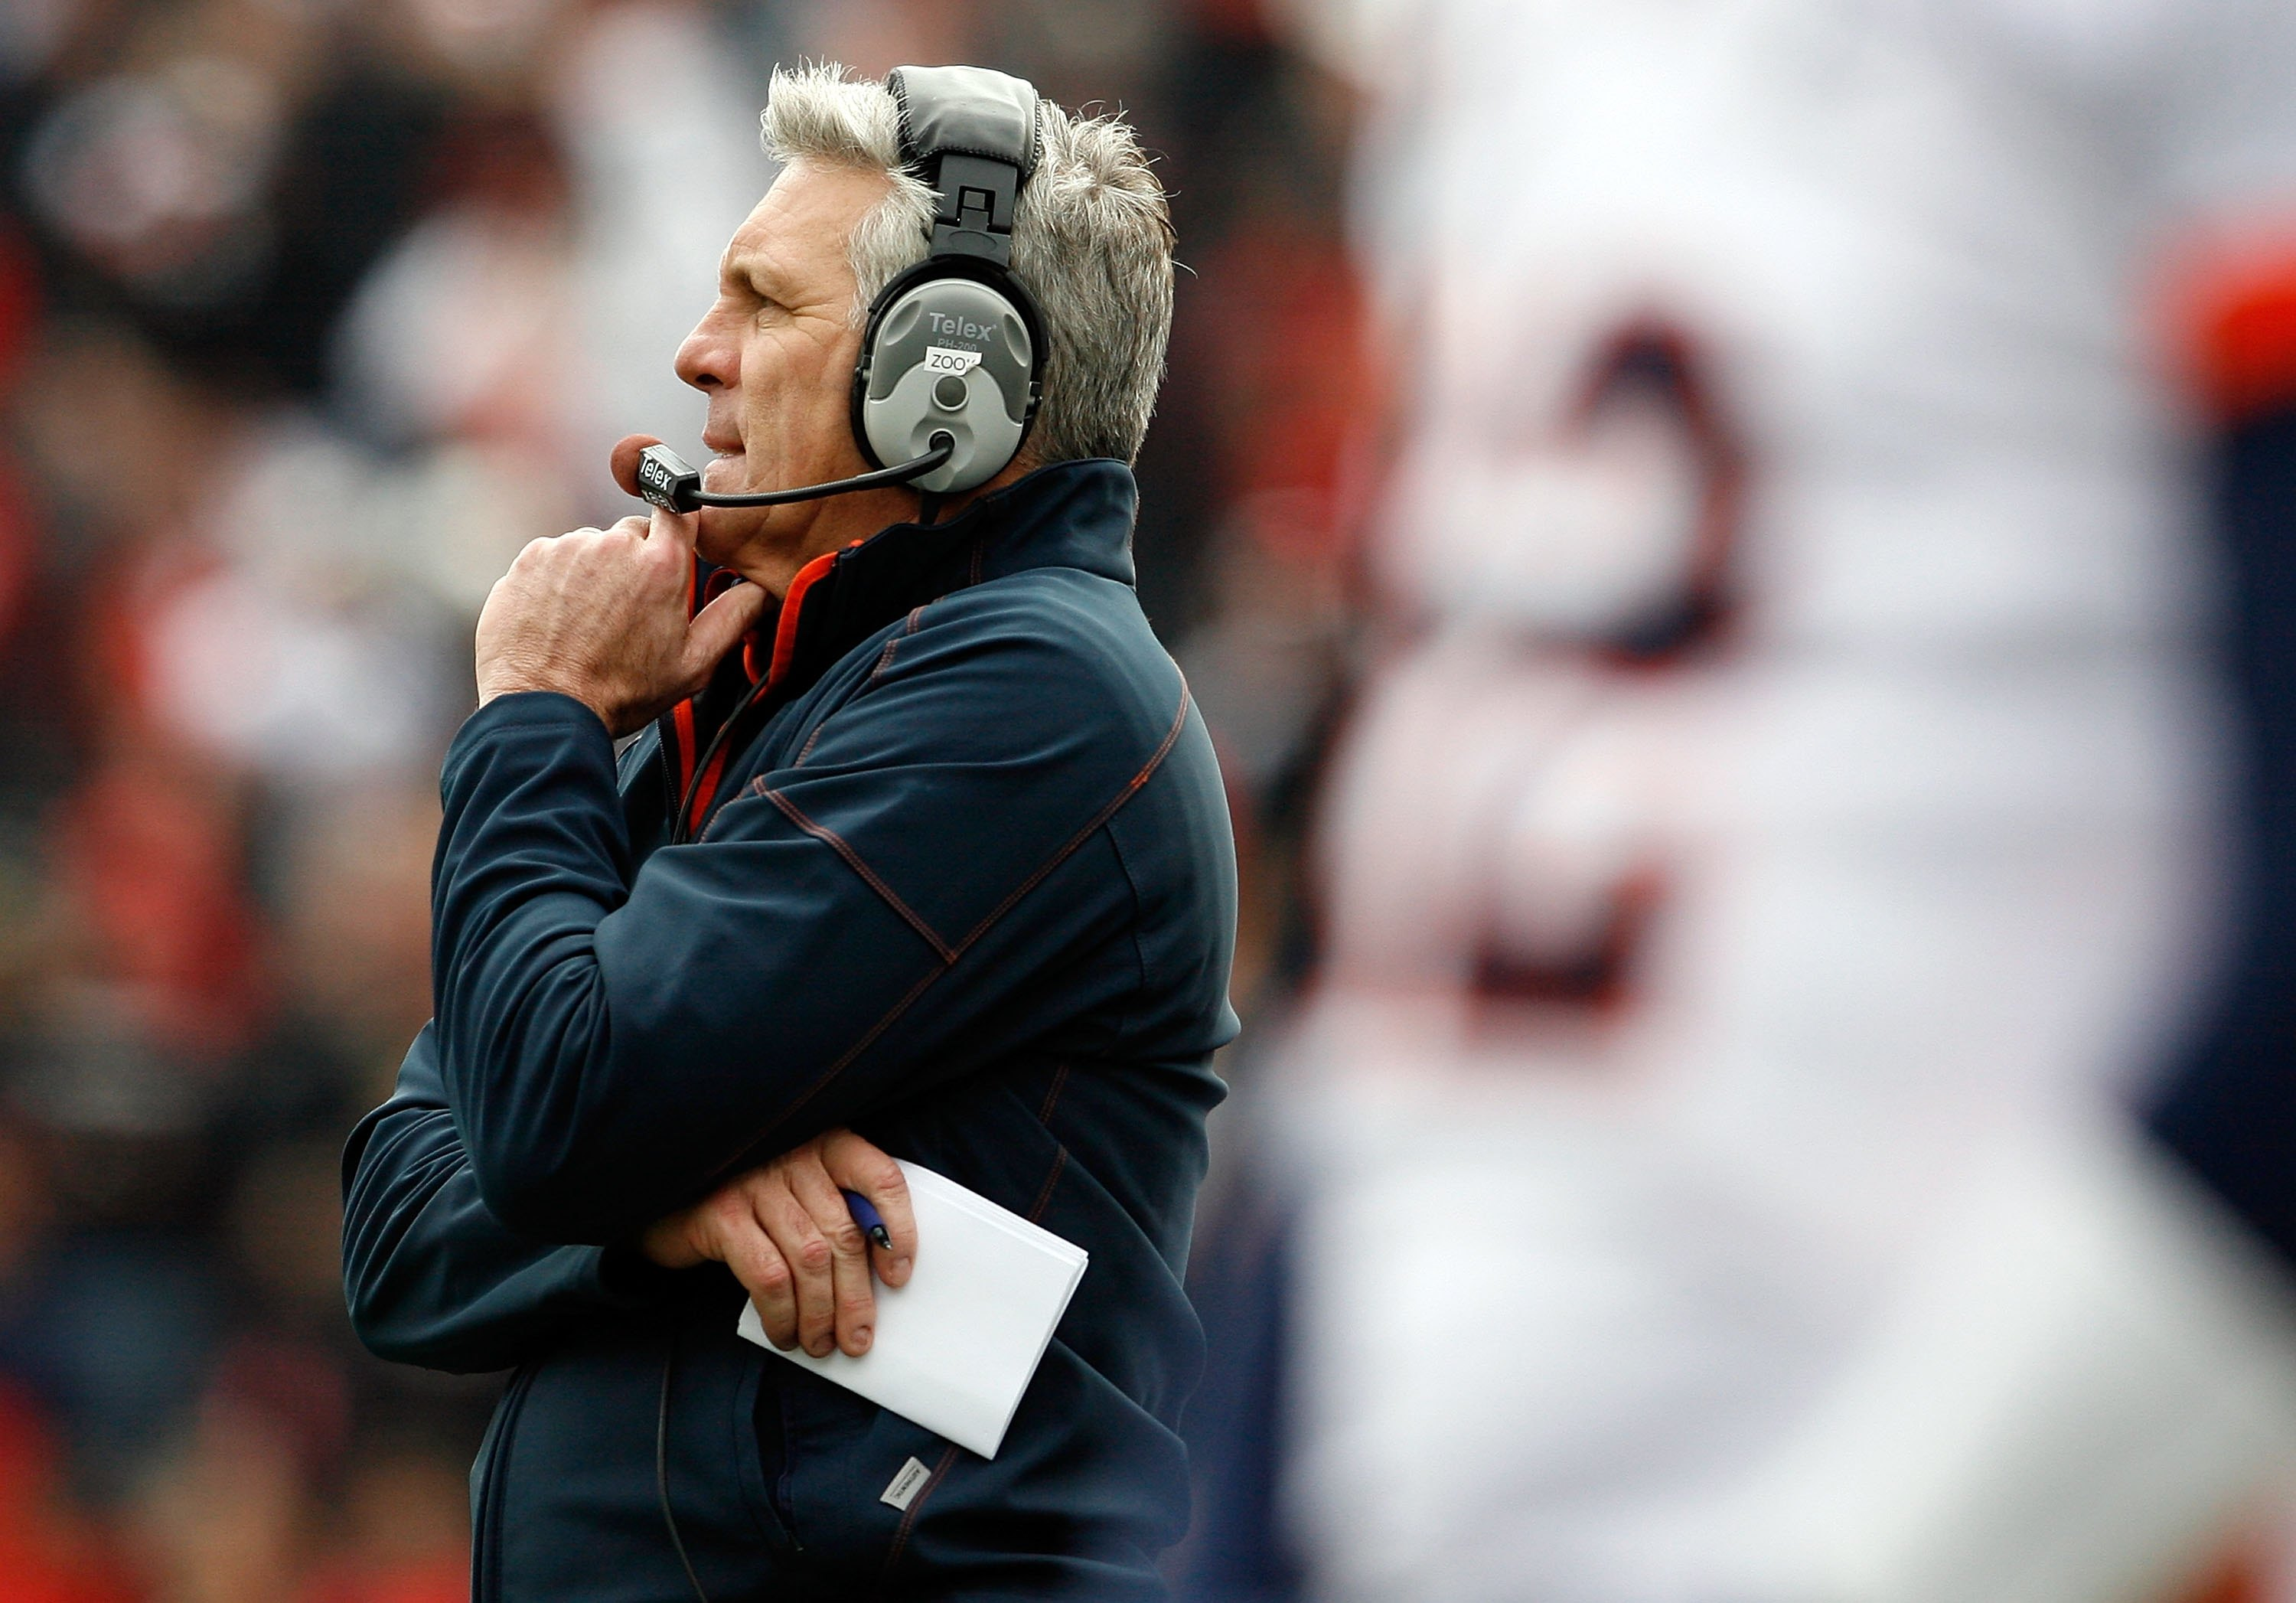 CINCINNATI - NOVEMBER 27:  Ron Zook the Head Coach of the Illinois Fighting Illini is pictured during the game against the Cincinnati Bearcats at Nippert Stadium on November 27, 2009 in Cincinnati, Ohio.  (Photo by Andy Lyons/Getty Images)